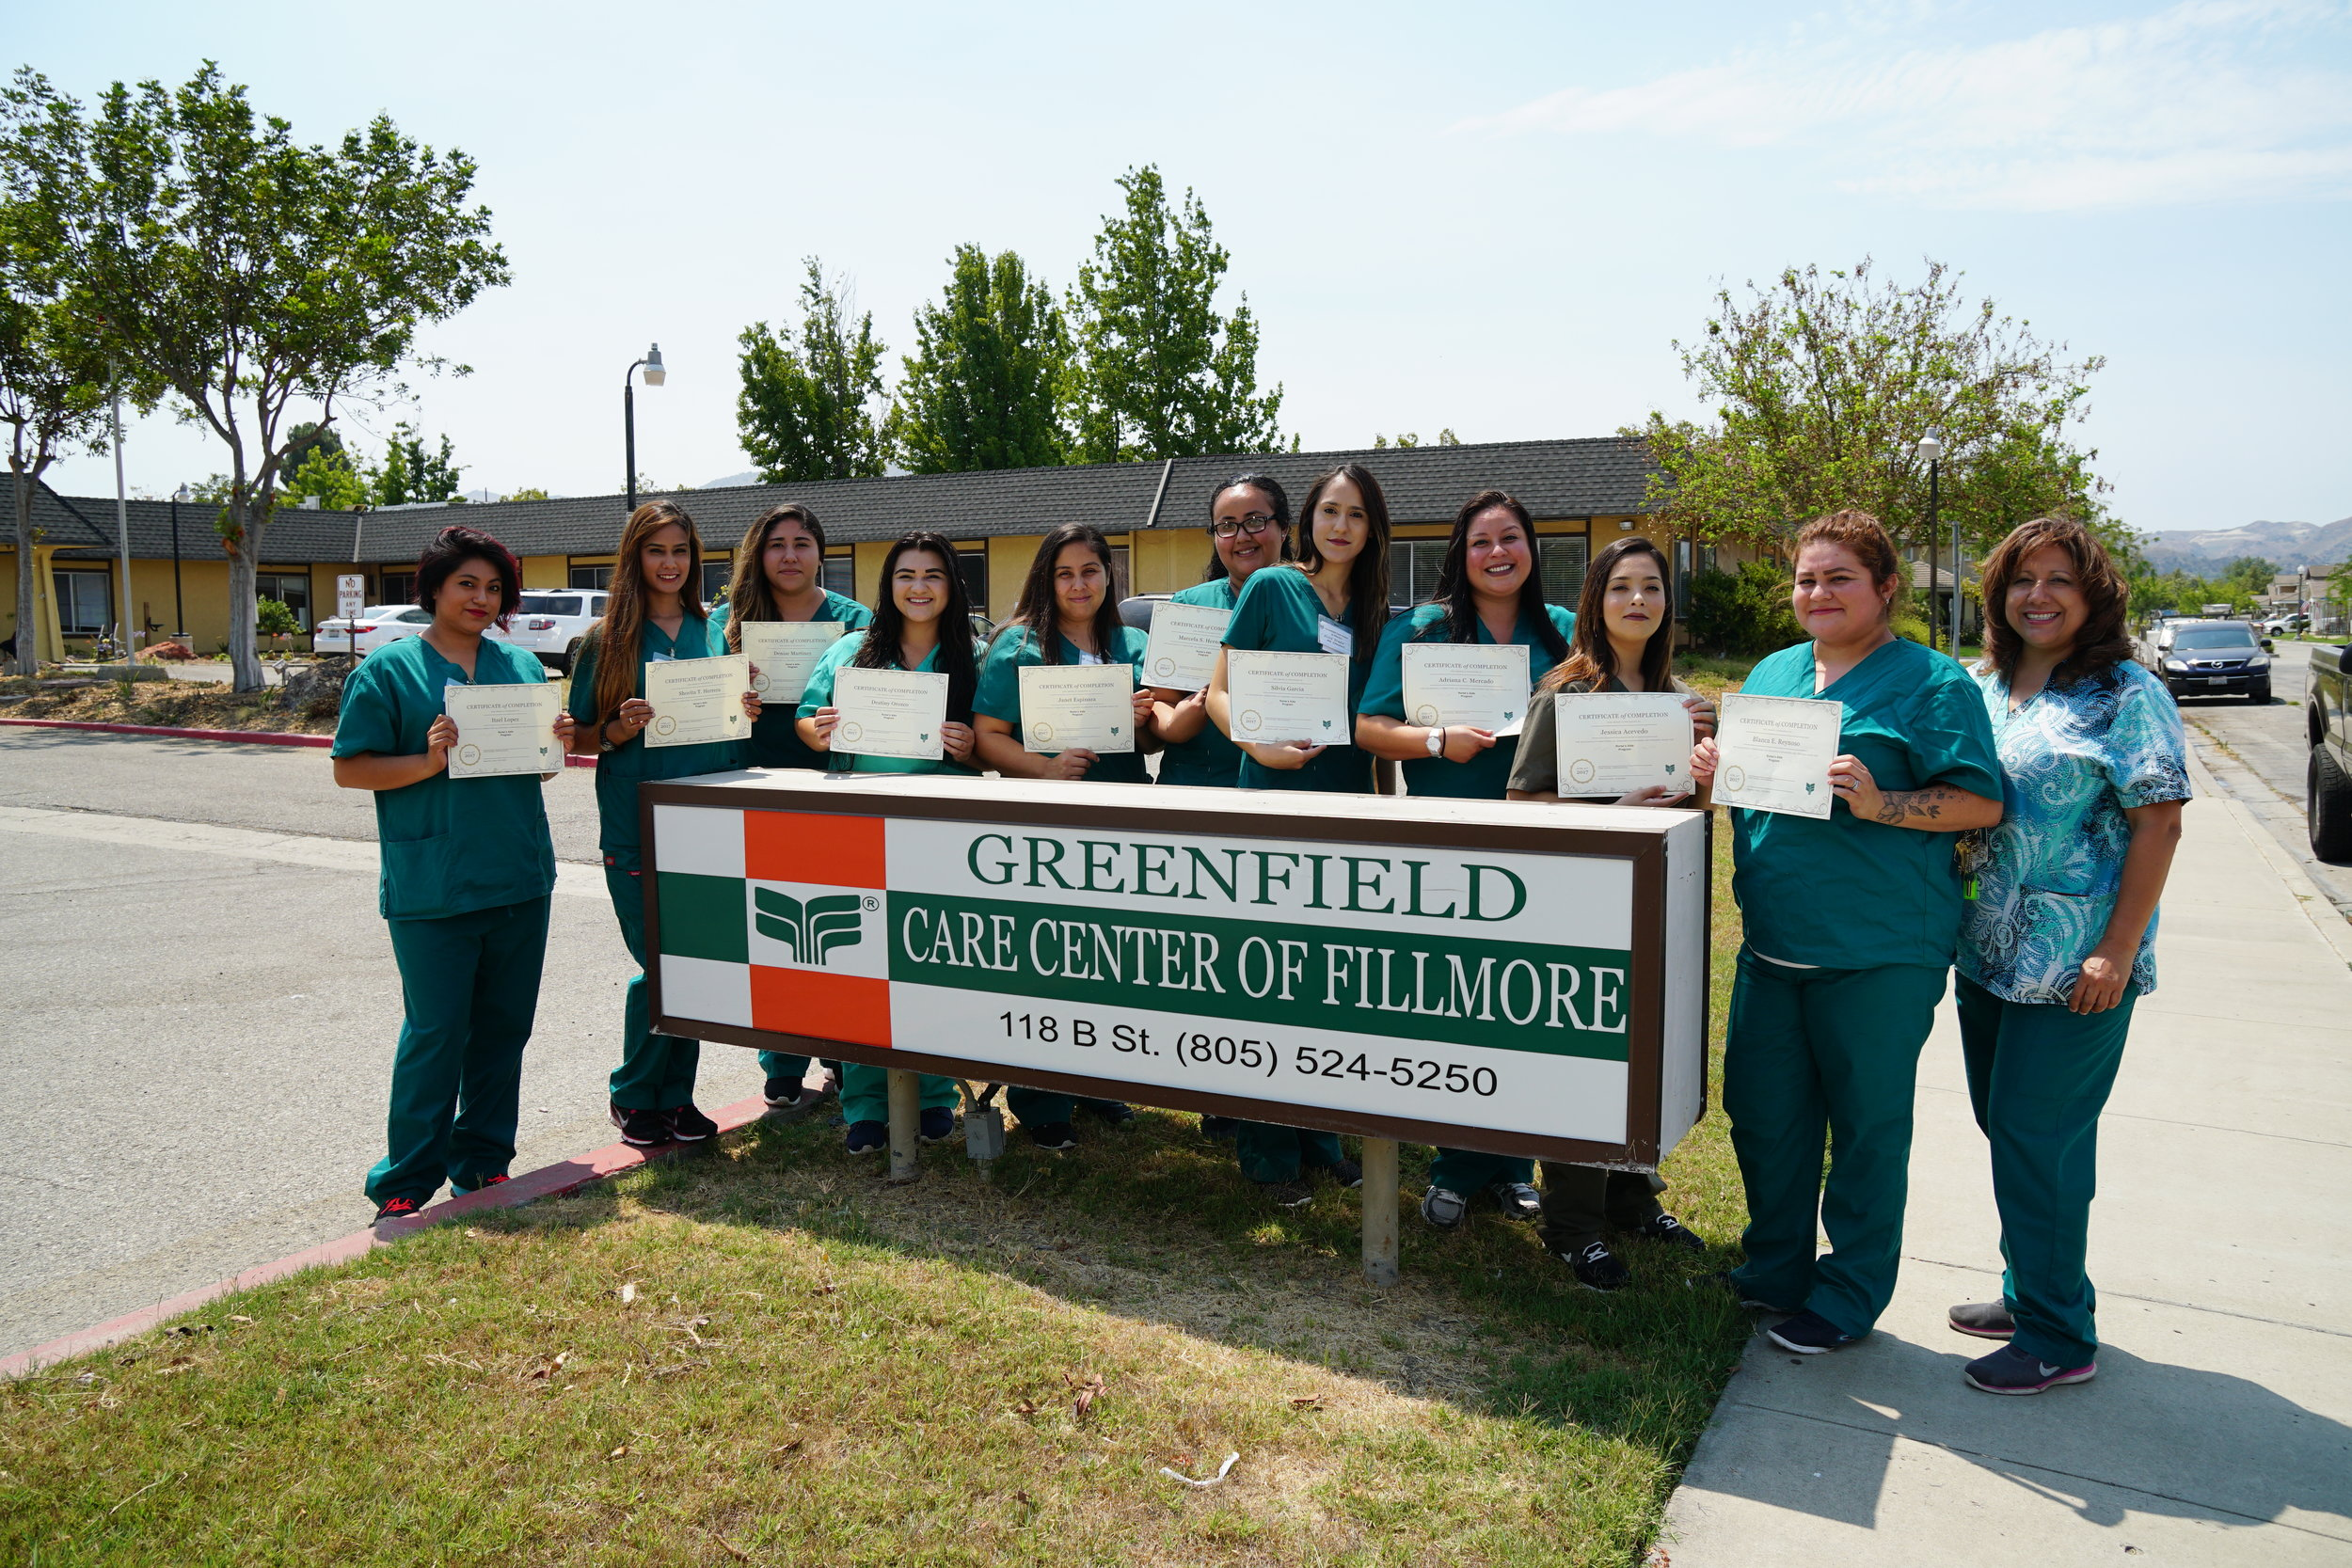 Greenfield Care Center in Fillmore has graduated their first 2017 CNA class. The next class will start on the second week of August. To register for the class please go to Greenfield Care Center at 118 B St in Fillmore to complete an application. The instructor Beatrice Colin/LVN will then schedule an interview with them.  Graduates from left to right are: Itzel Lopez,Shovita Herrera,Denise Martinez,Destiny Orozco,Janet Espinoza,Marcela Hernandez,Silvia Garcia,Adriana Mercado,Jessica Acevedo,Blanca Reynoso and Instructor: LVN Beatrice Colin